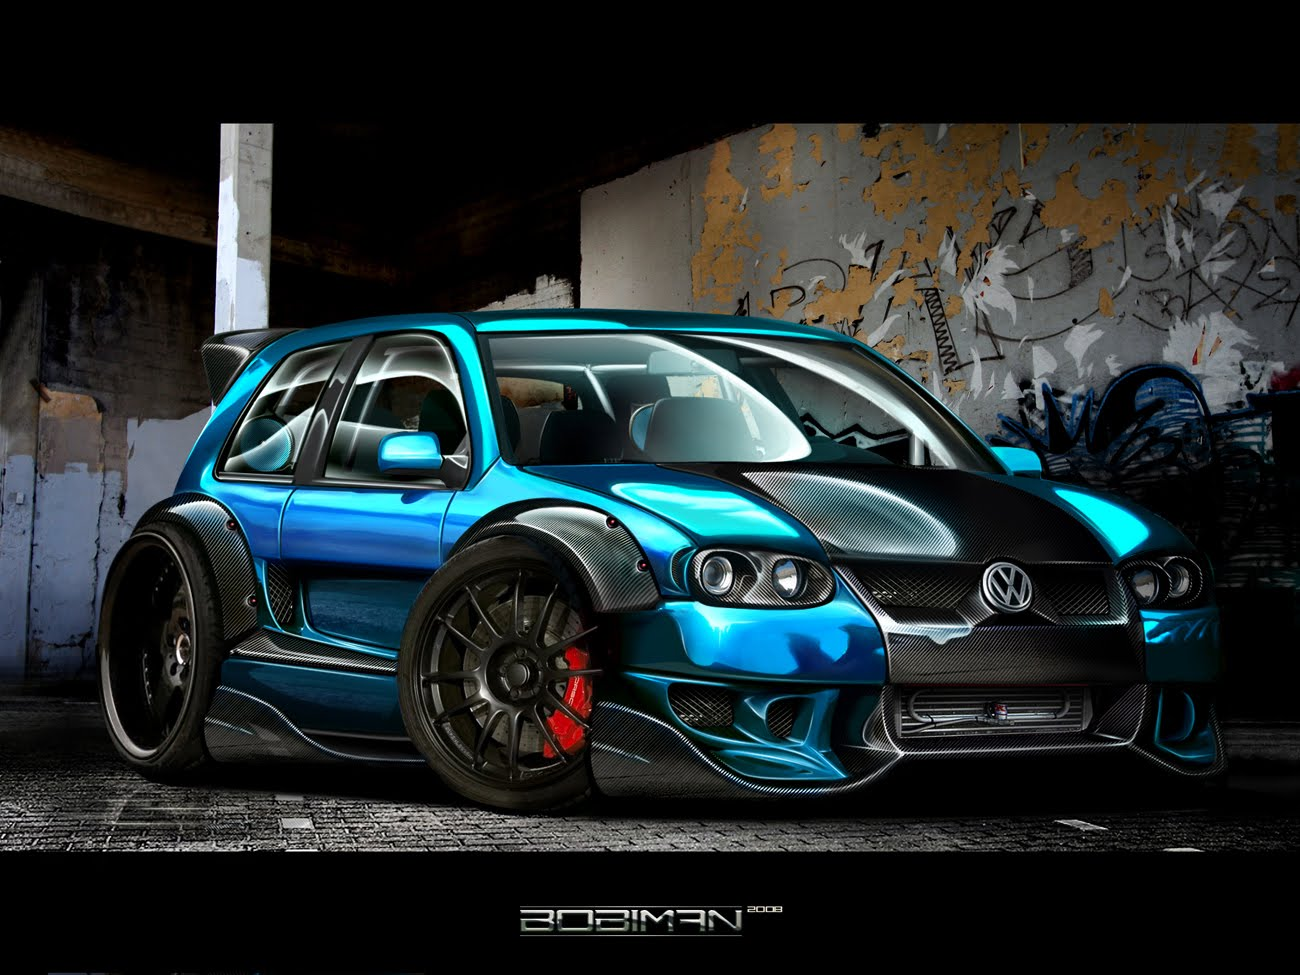 Cool car wallpapers Hd |Cars Wallpapers And Pictures car images,car pics,carPicture